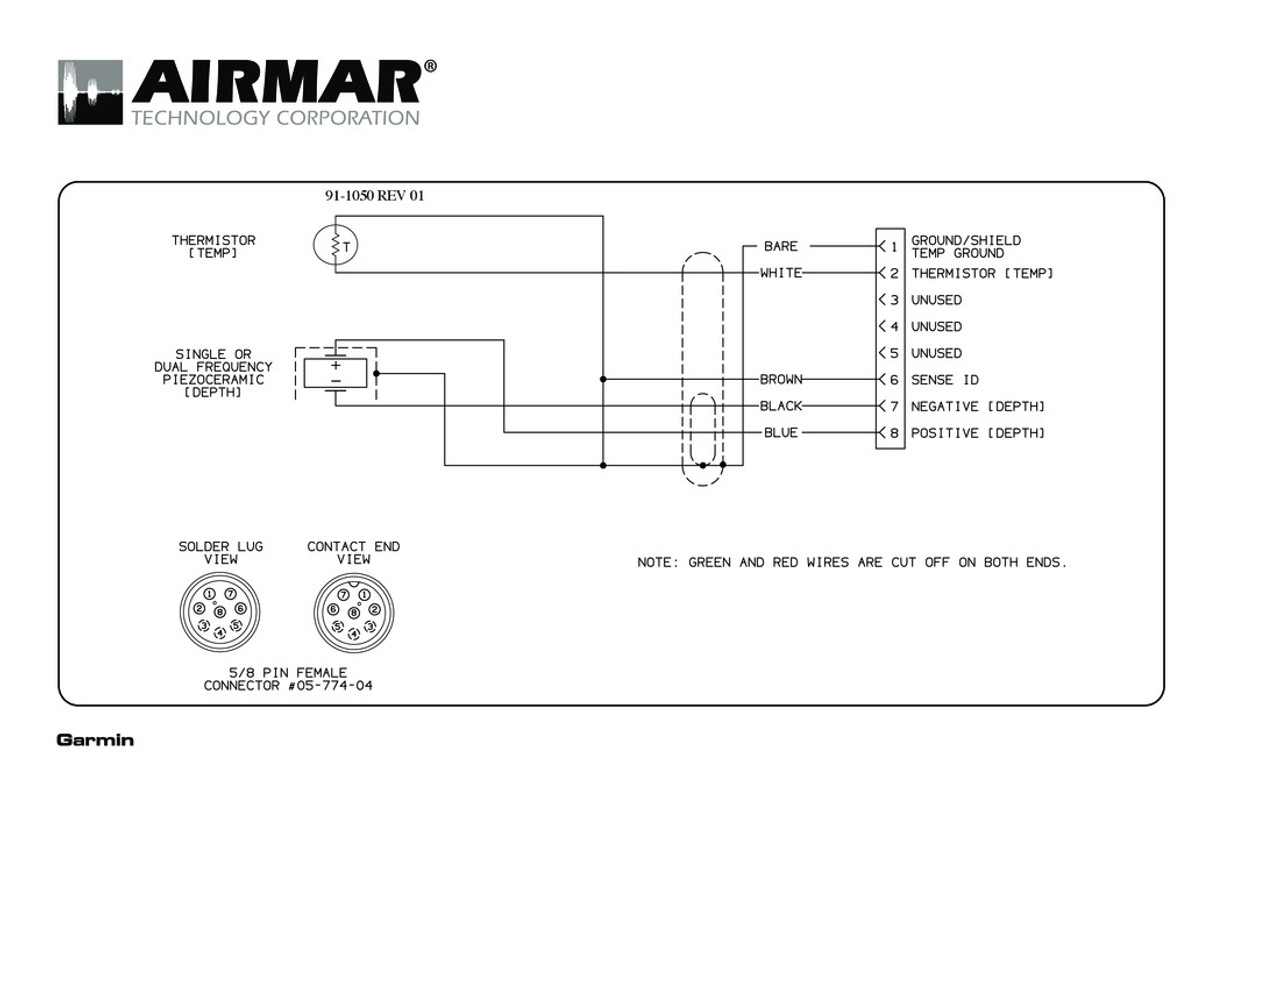 Airmar Wiring Diagrams Diagram Symbols Connectors Garmin P319 8 Pin D T Blue Bottle Marine Rh Bluebottlemarine Com 3 Way Switch